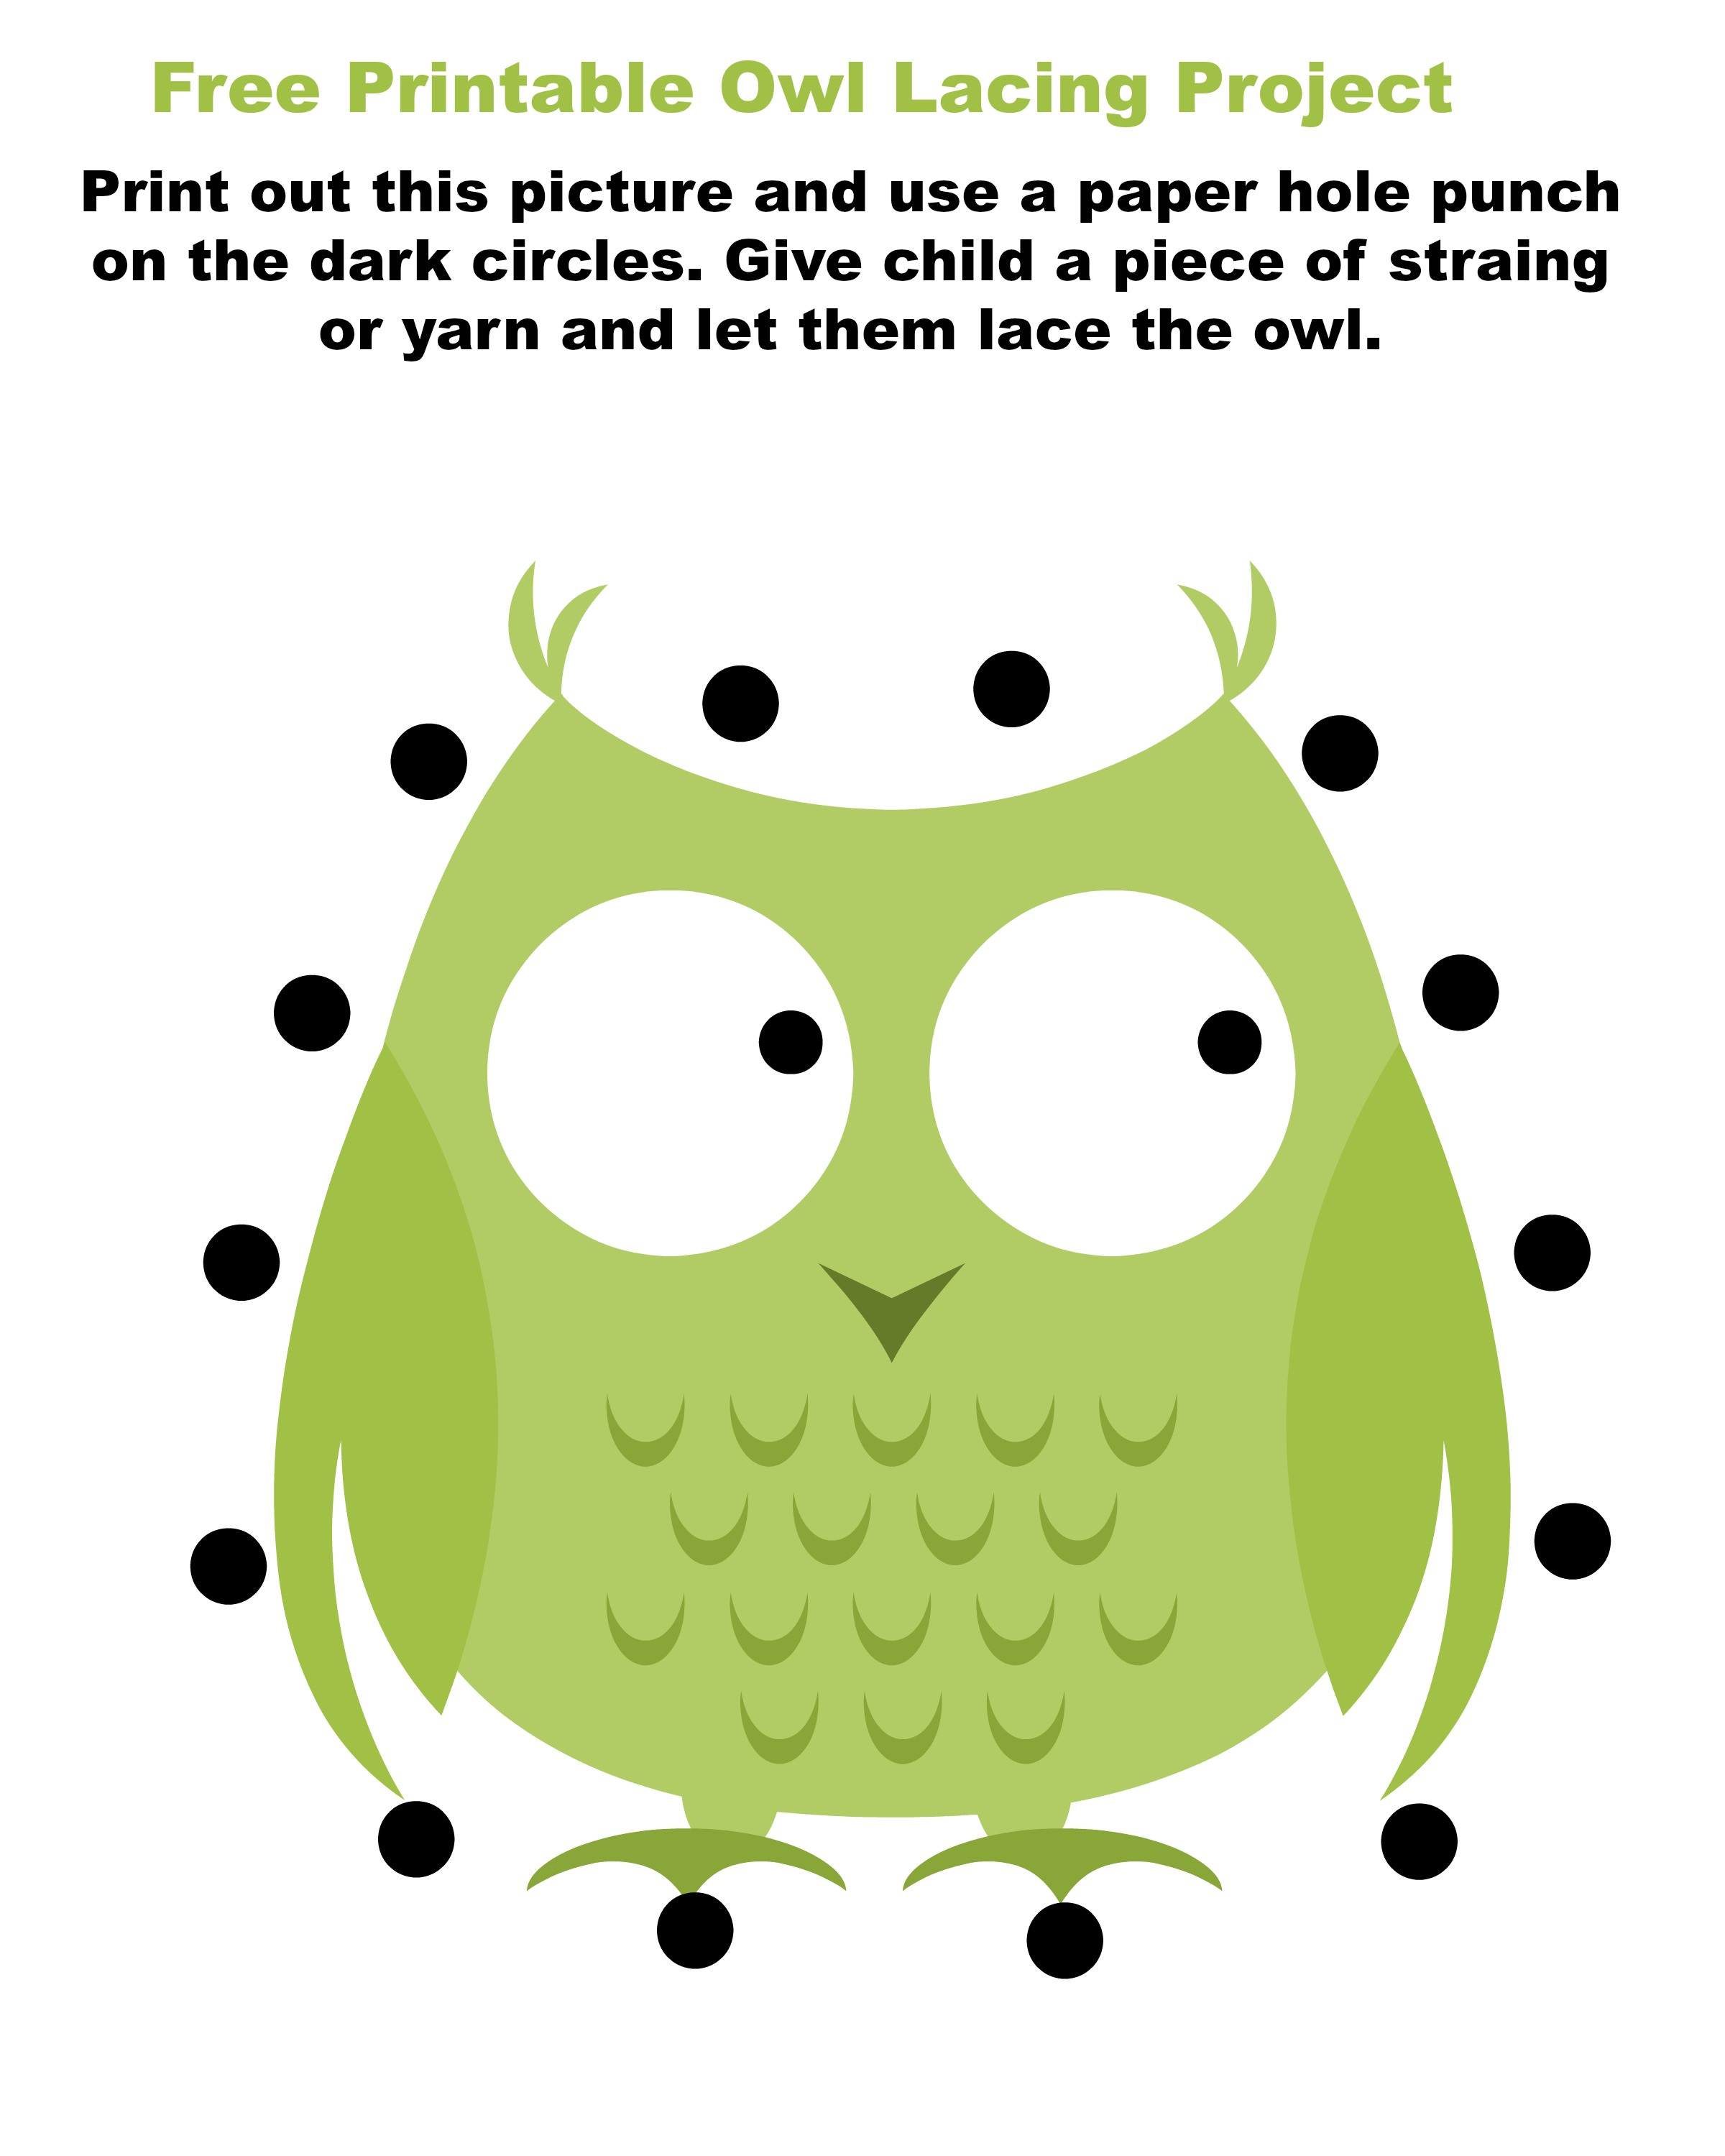 Free printable owl lacing card - jenny at dapperhouse